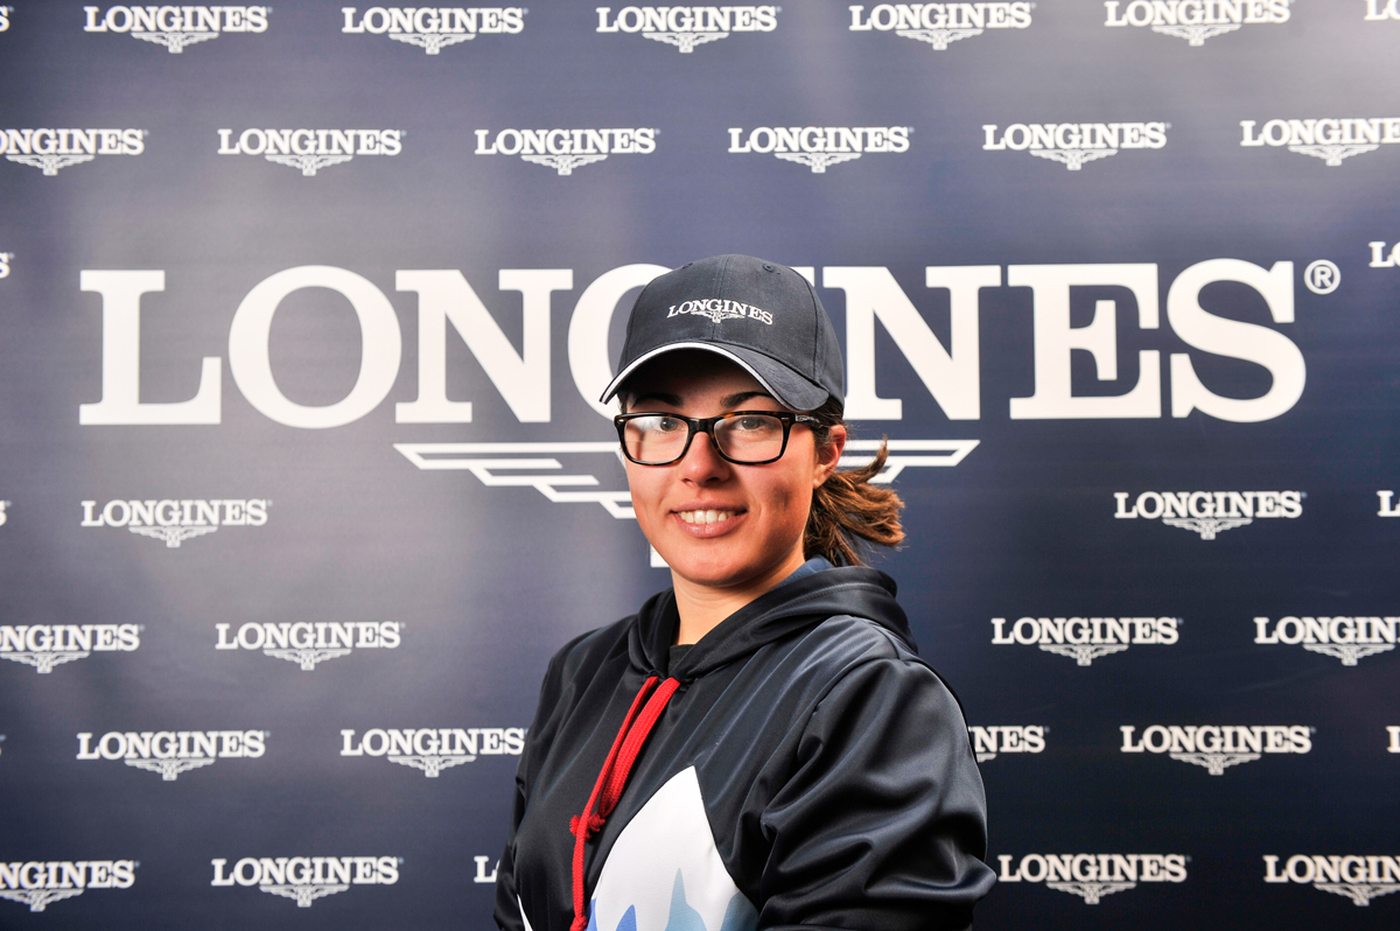 Longines Alpine Skiing Event: Second edition of the Longines Future Ski Champions – A successful 100% female competition in Val d'Isère 7